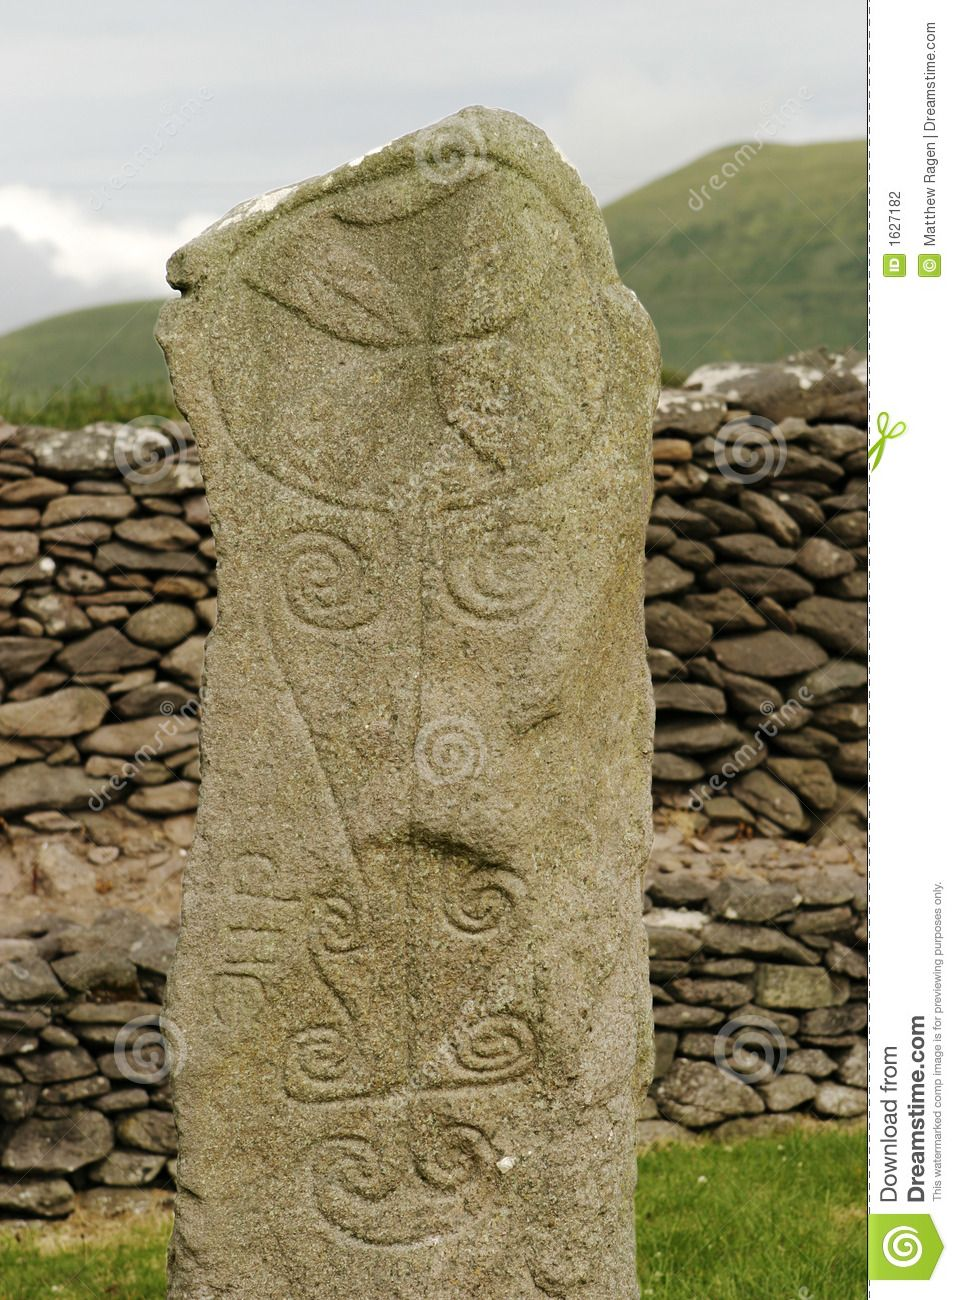 Ancient Celtic Tombstone Download From Over 51 Million High Quality Stock Photos Images Vectors Sign Up For Free T Ancient Celts Celtic Culture Celtic Art